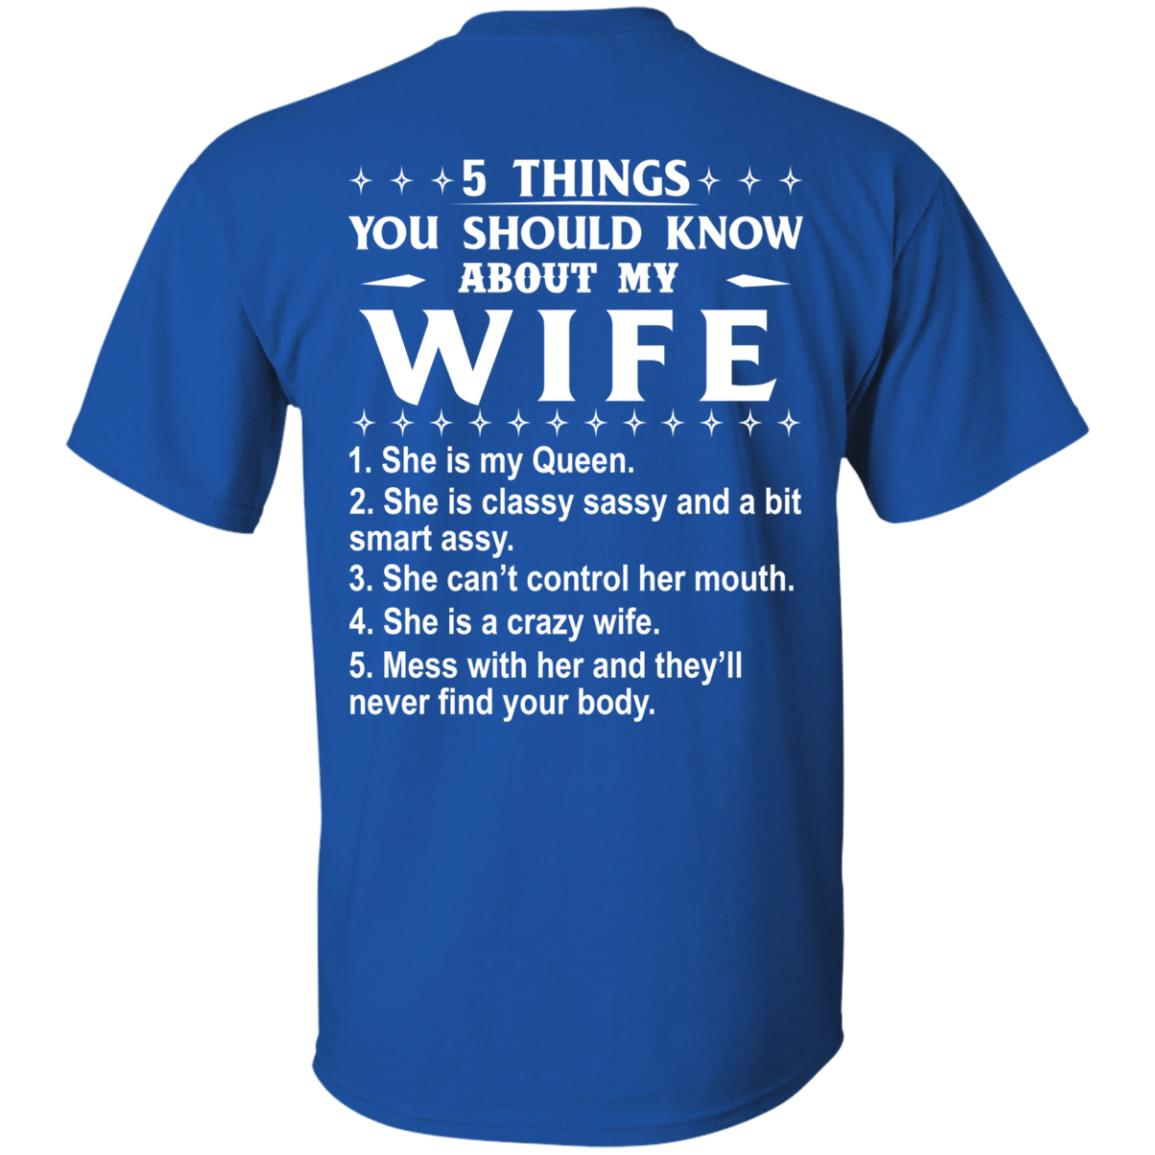 5 Things You Should Know About My wife Shirt & Sweatshirt - image 404